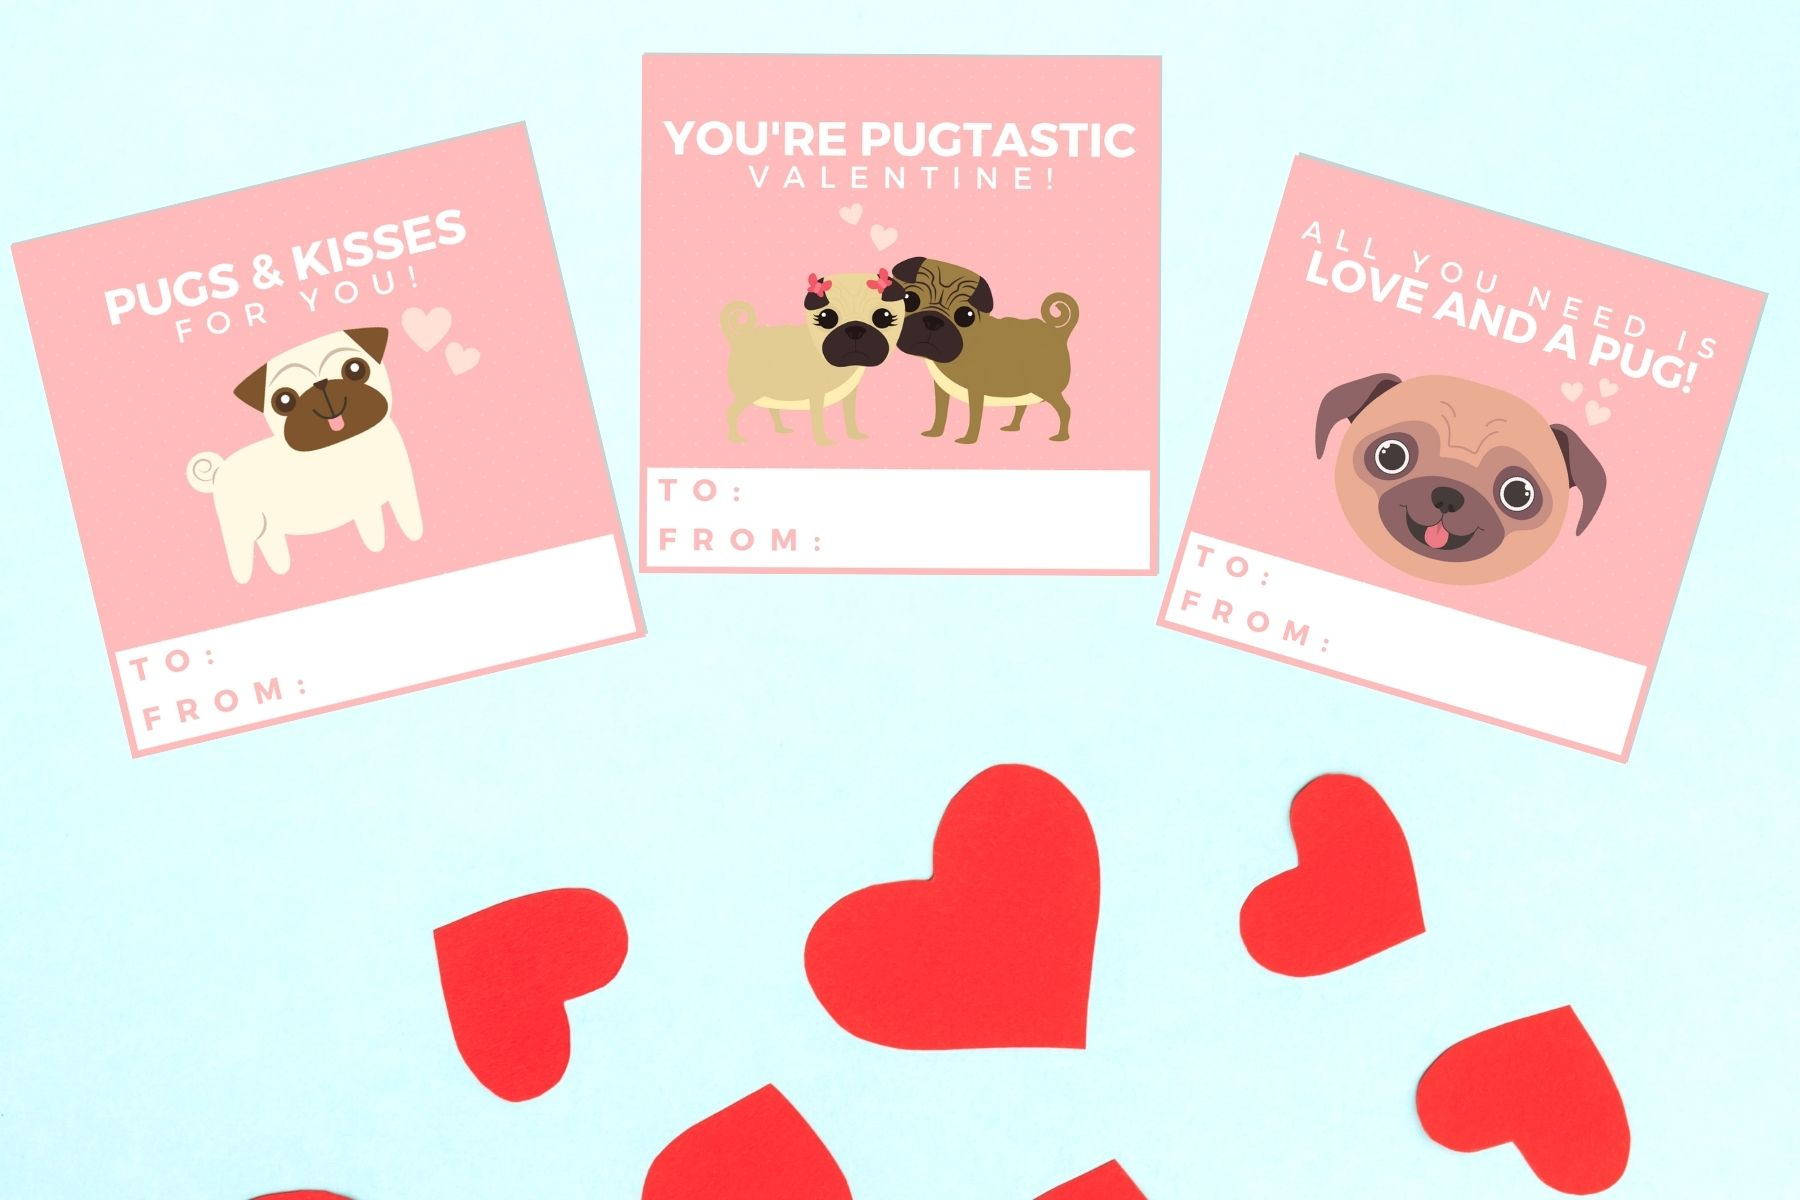 pug valentine's day cards